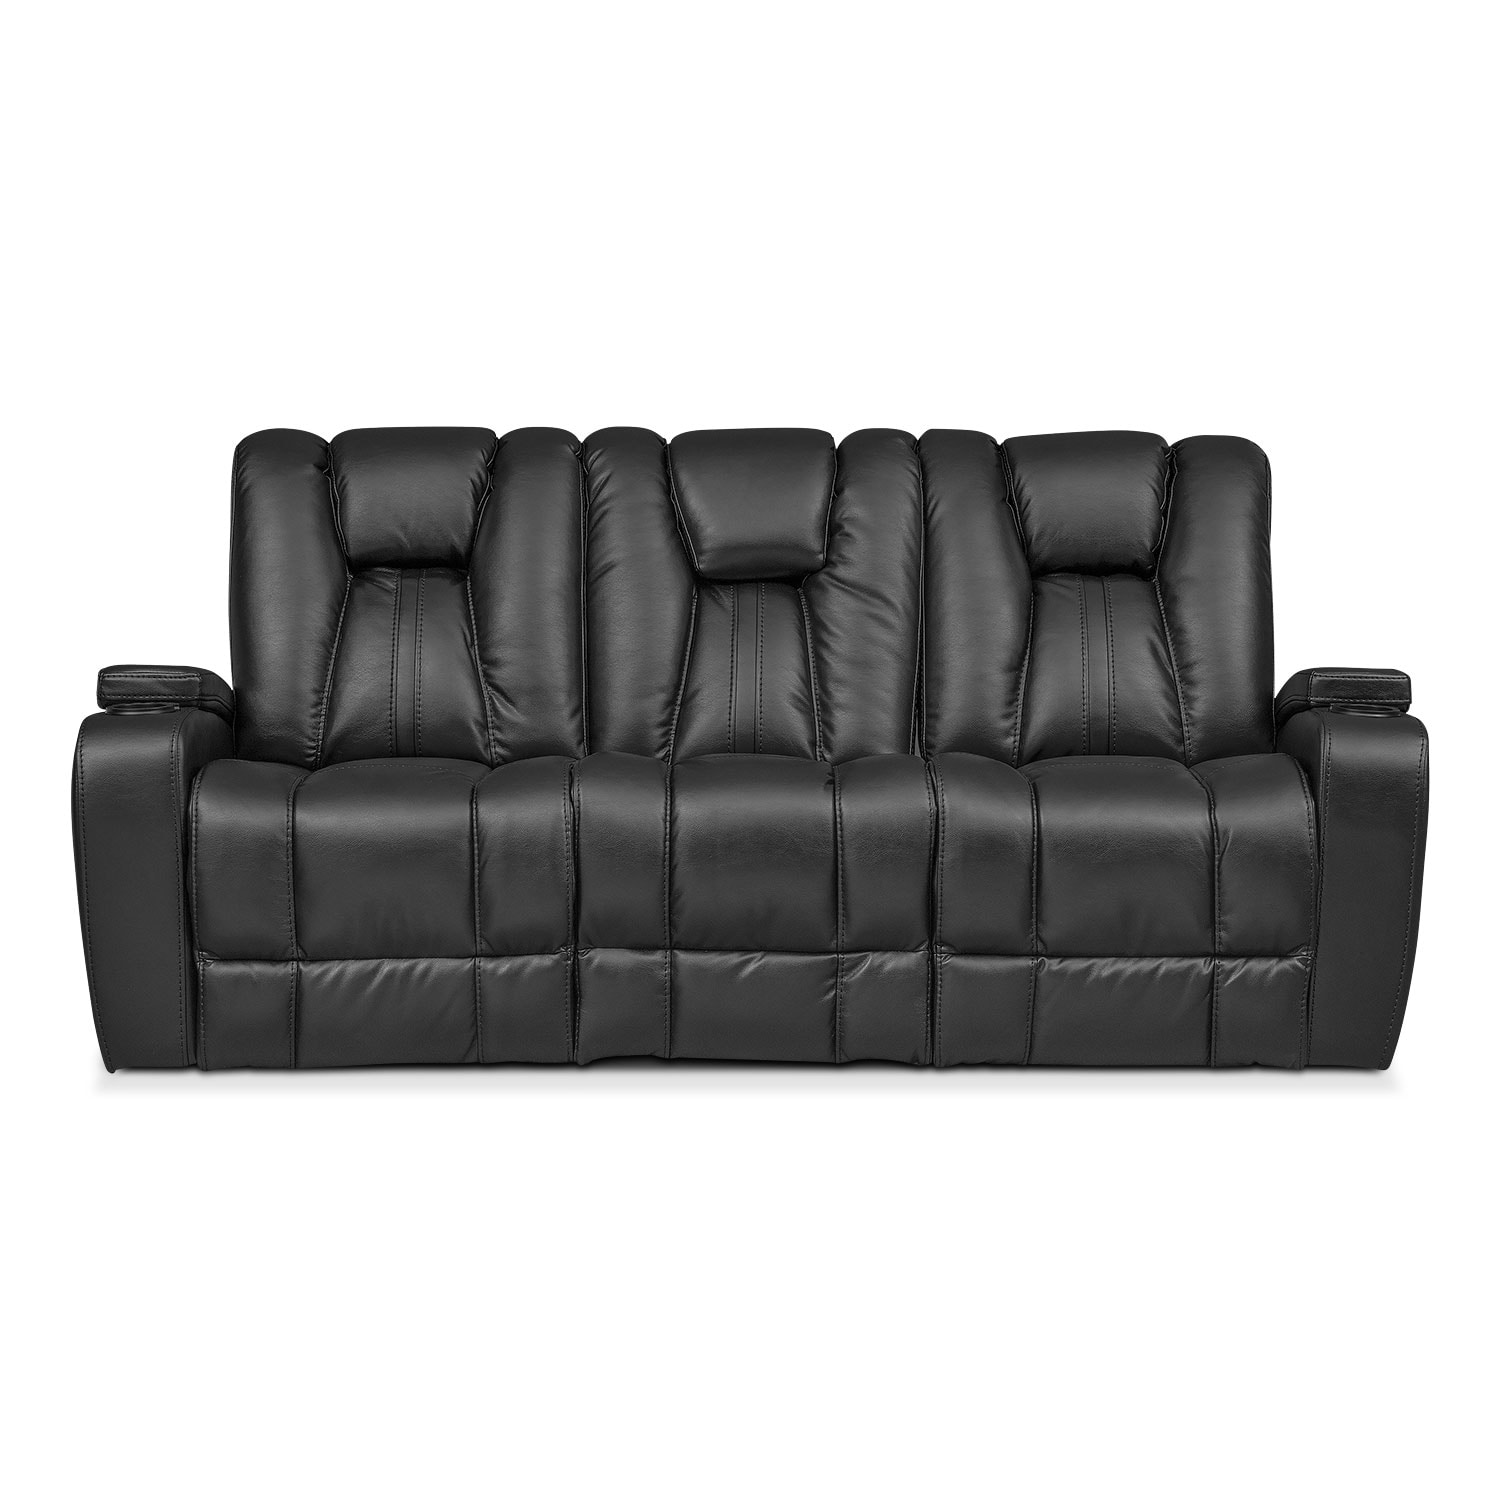 pulsar dual power reclining sofa black by one80 - Black Leather Loveseat